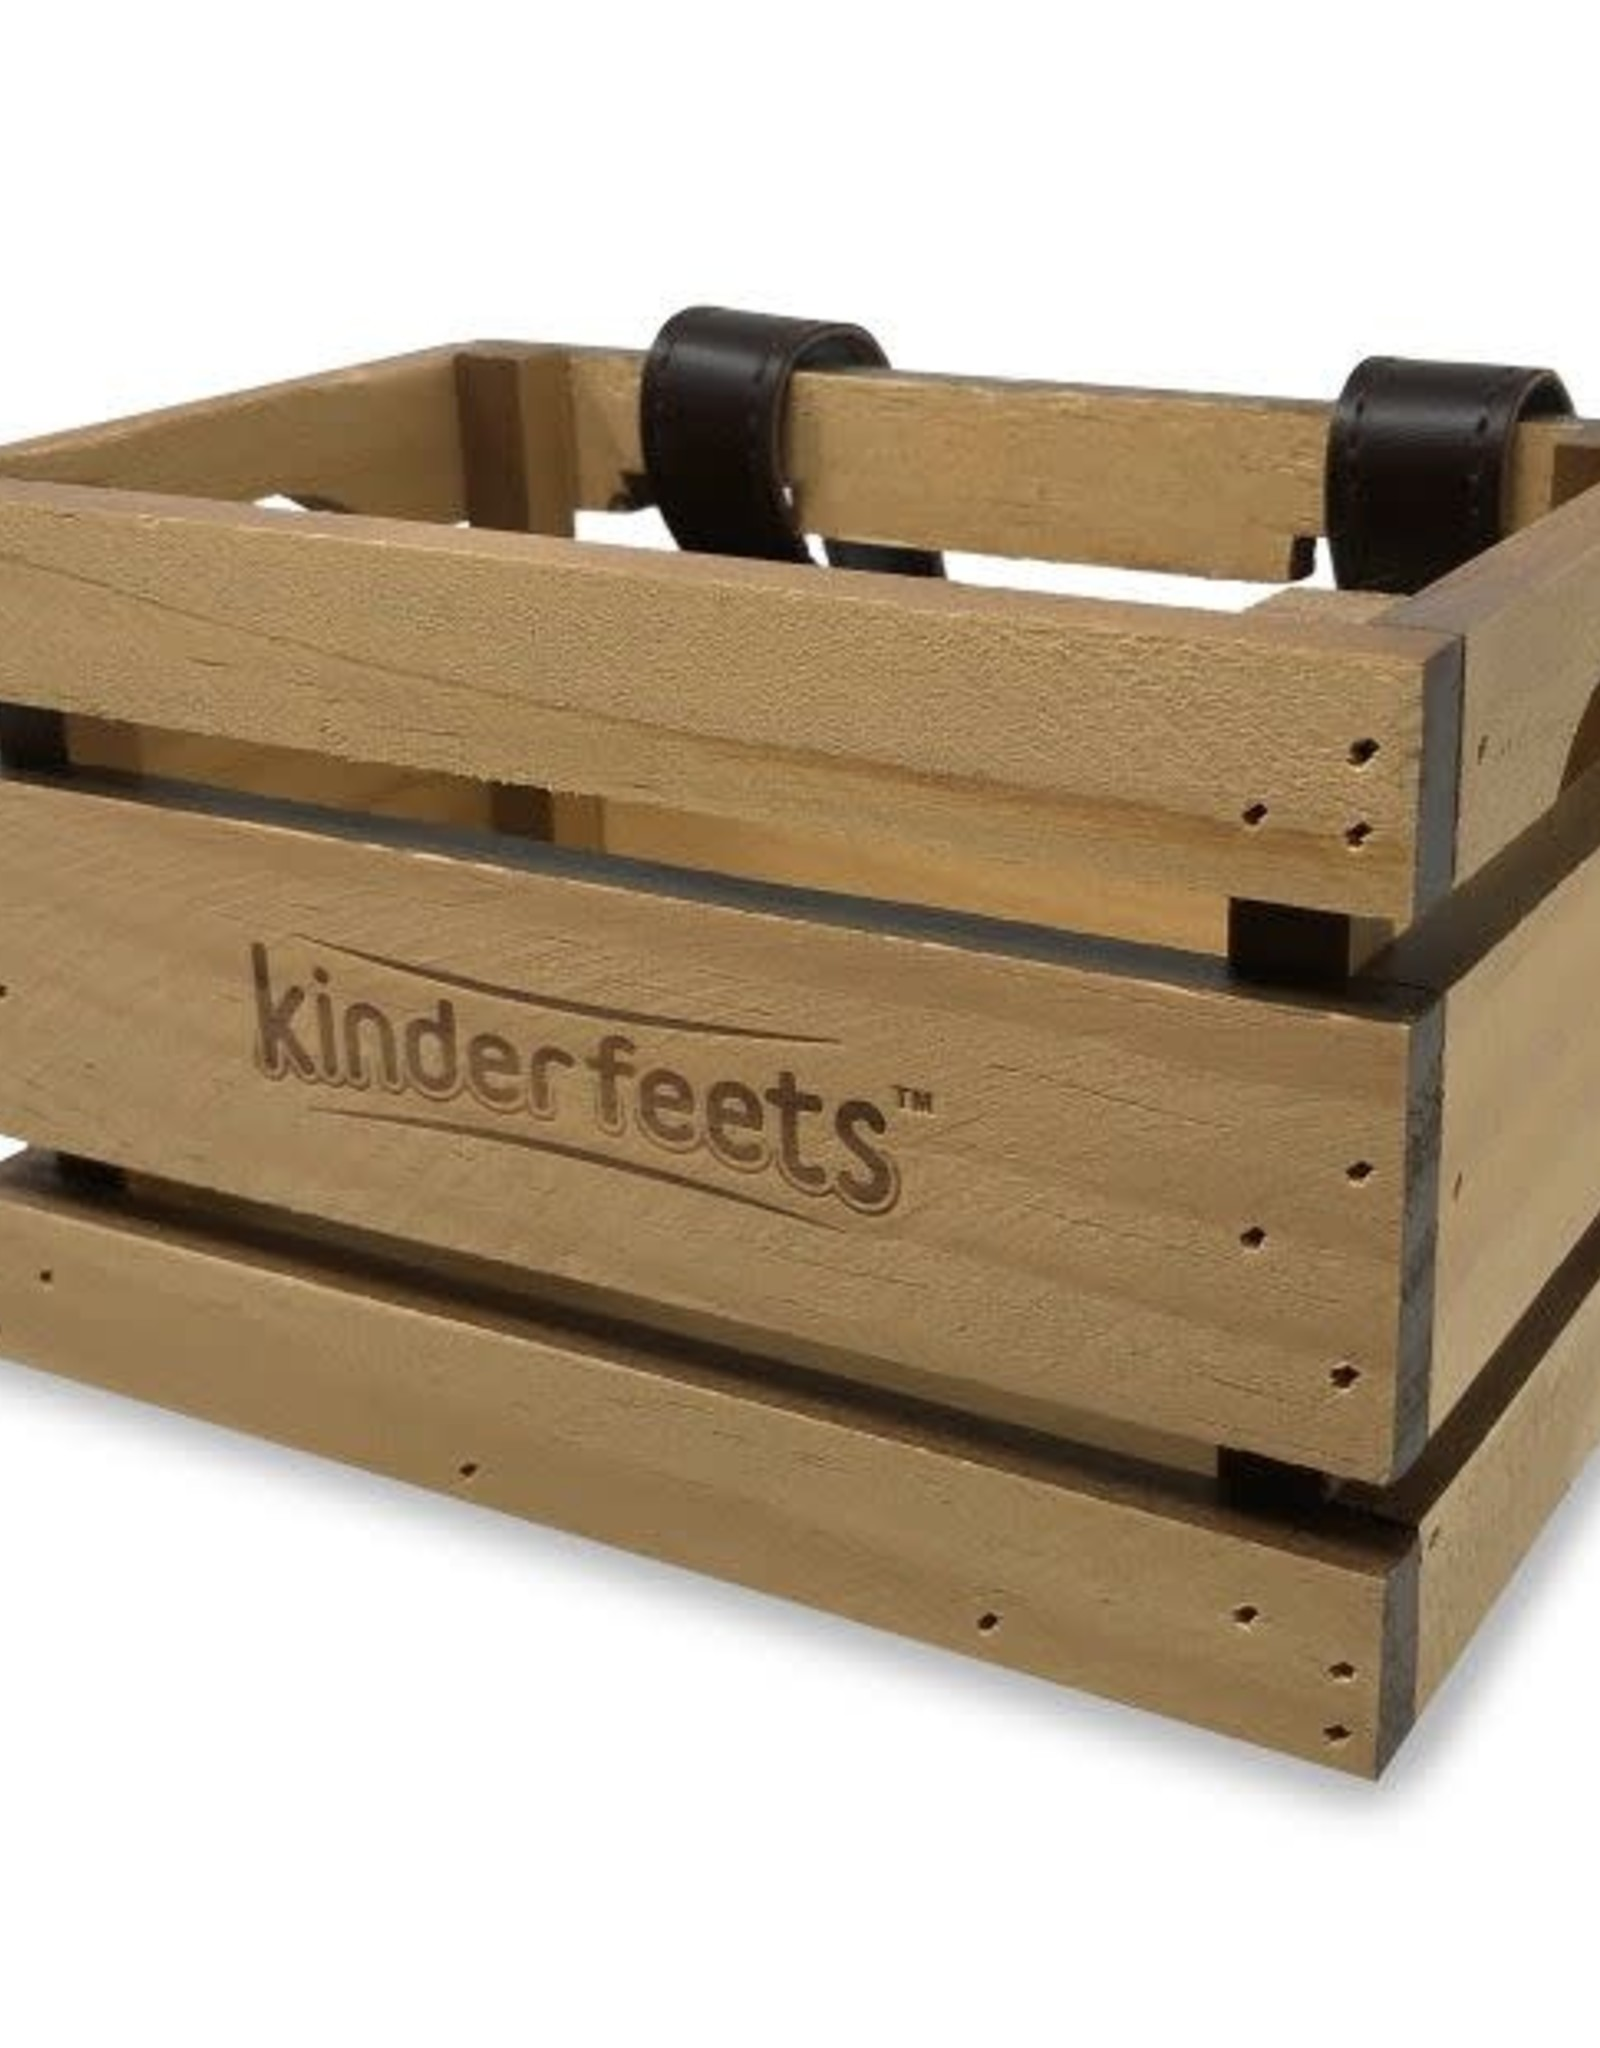 Kinderfeets Crate for kinderfeets bike